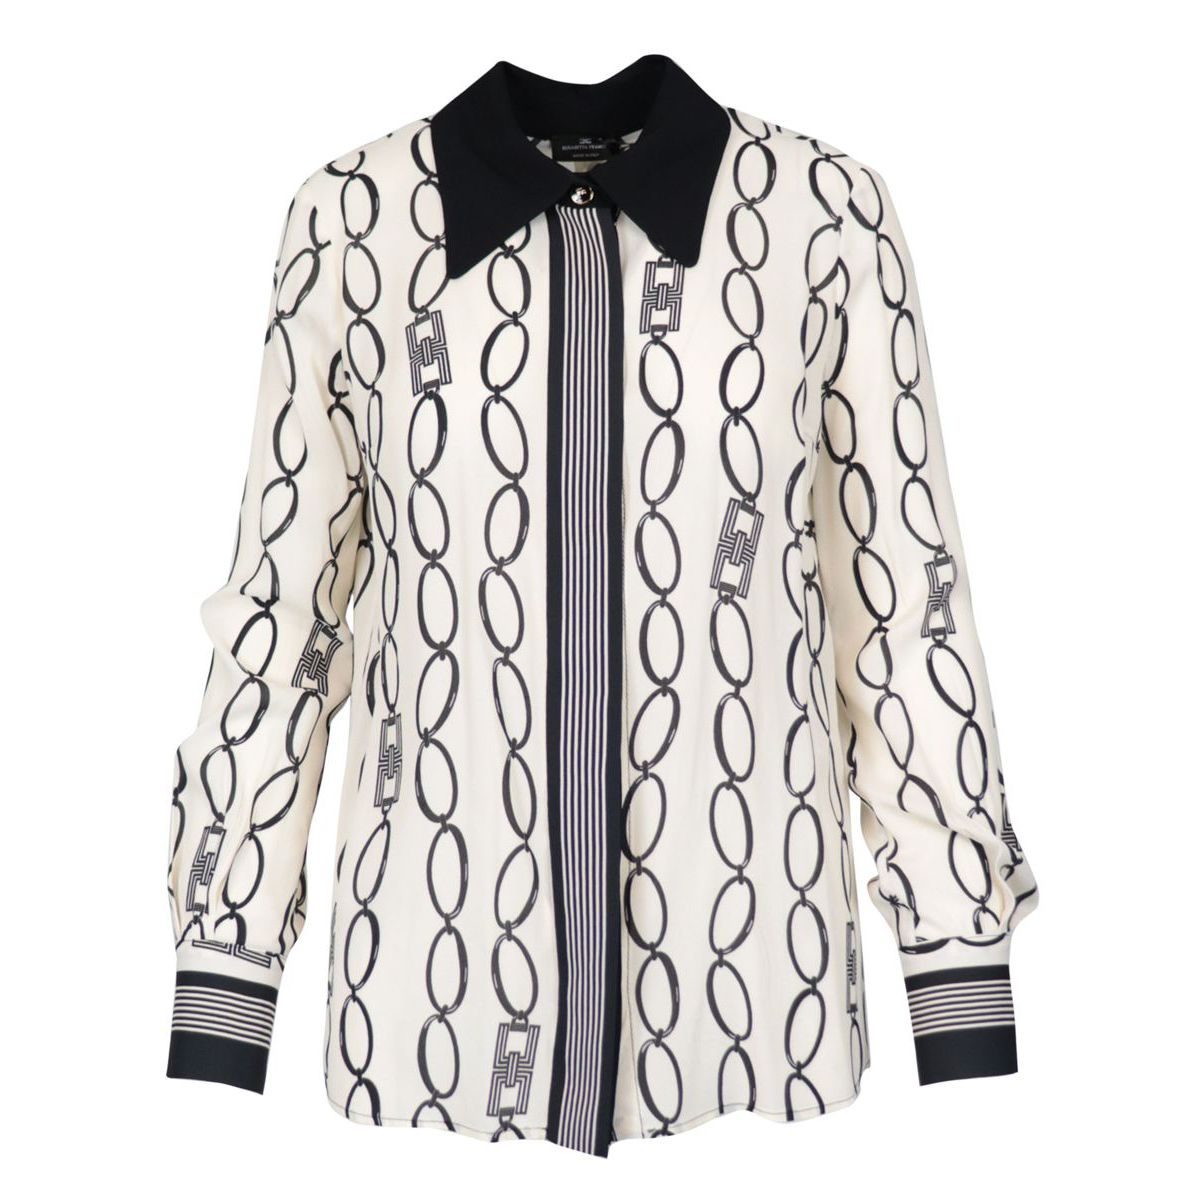 Viscose shirt with chain print Butter / black Elisabetta Franchi